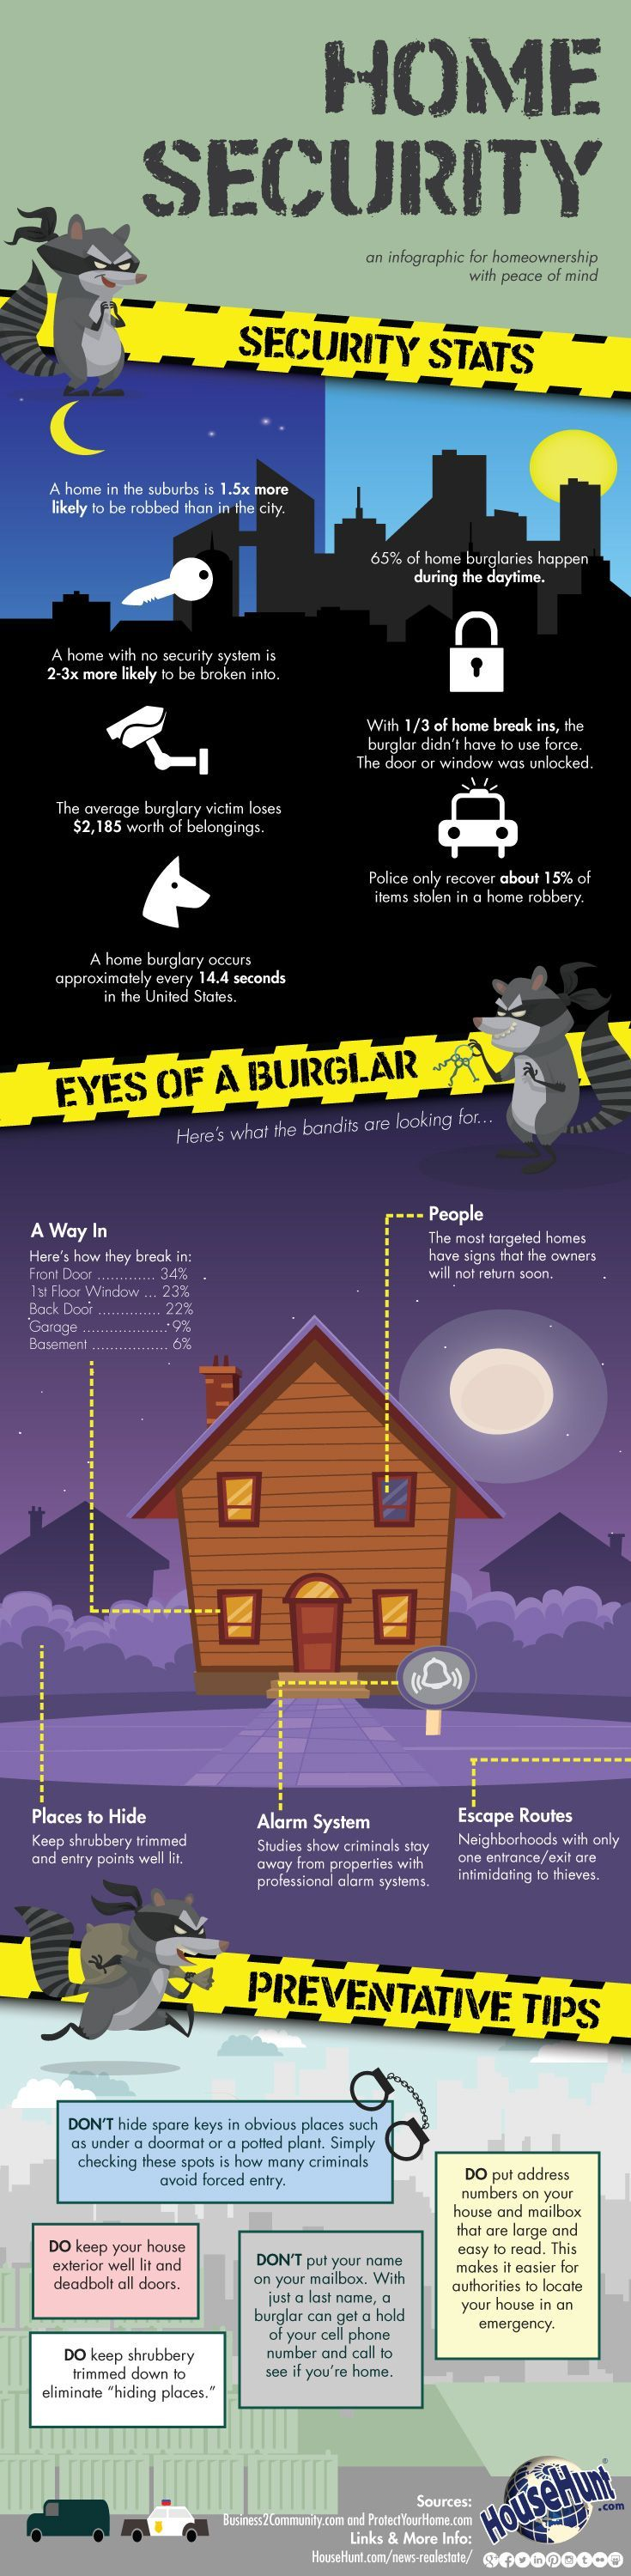 Home Security [Infographic] | Statistics, Infographic and ...